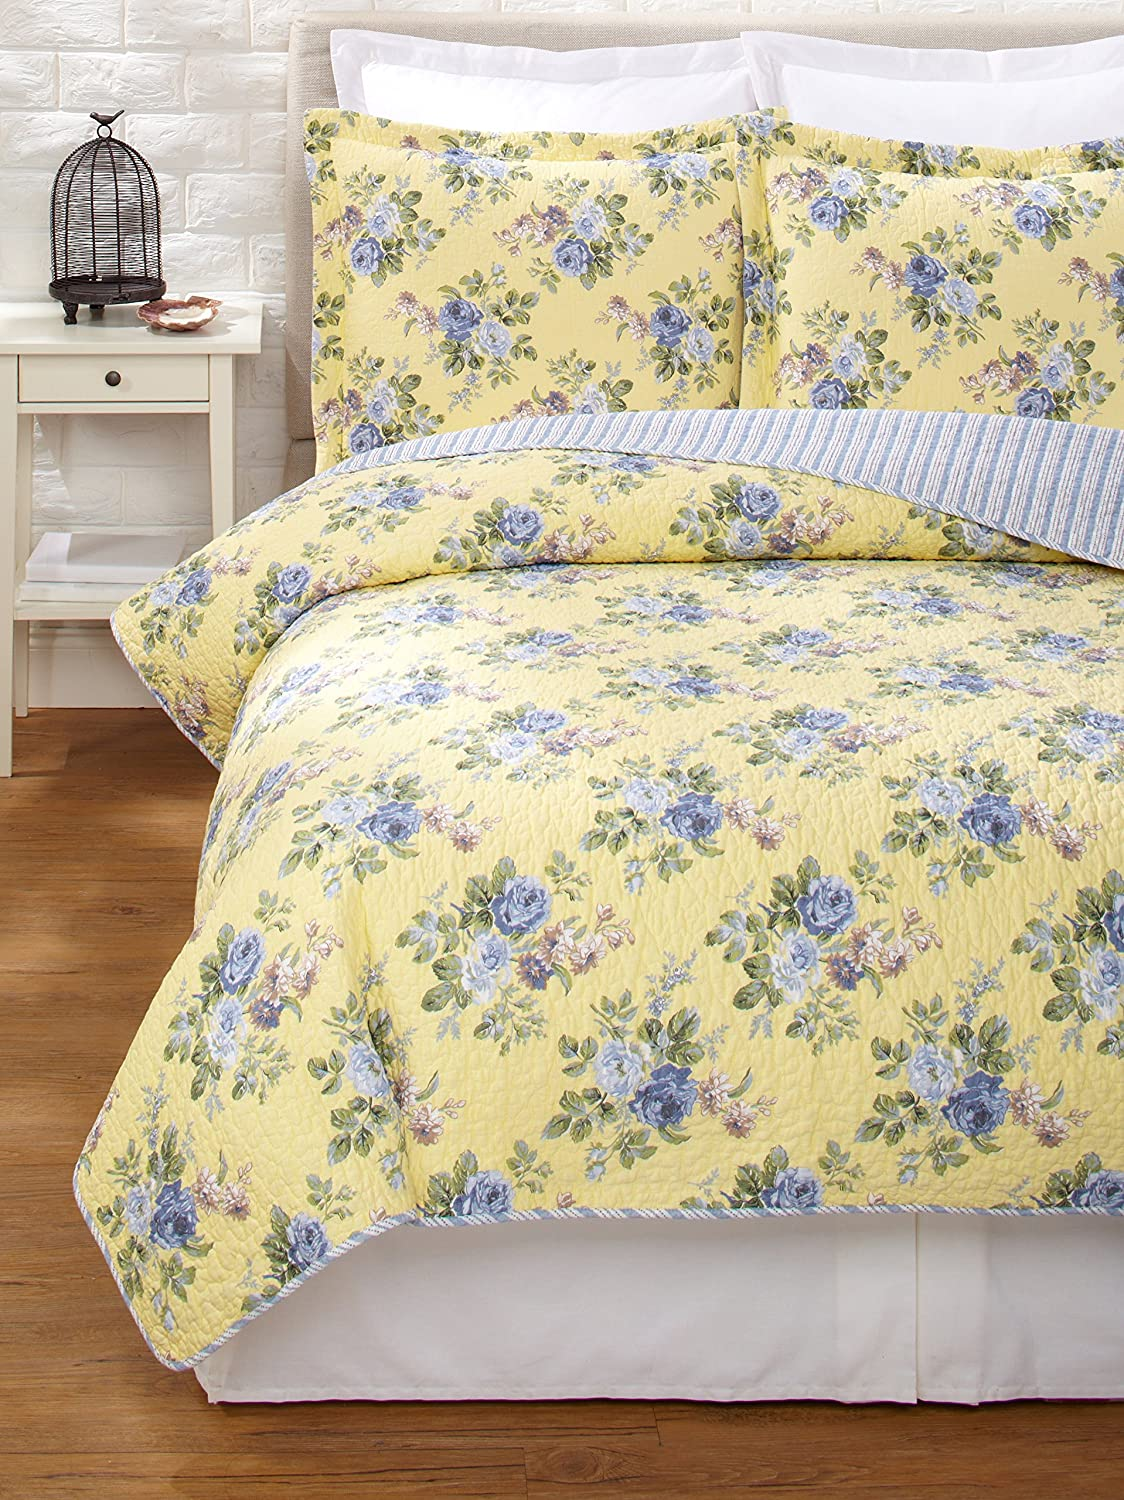 Laura Ashley Bedding Sets – Ease Bedding with Style : laura ashley king quilt - Adamdwight.com